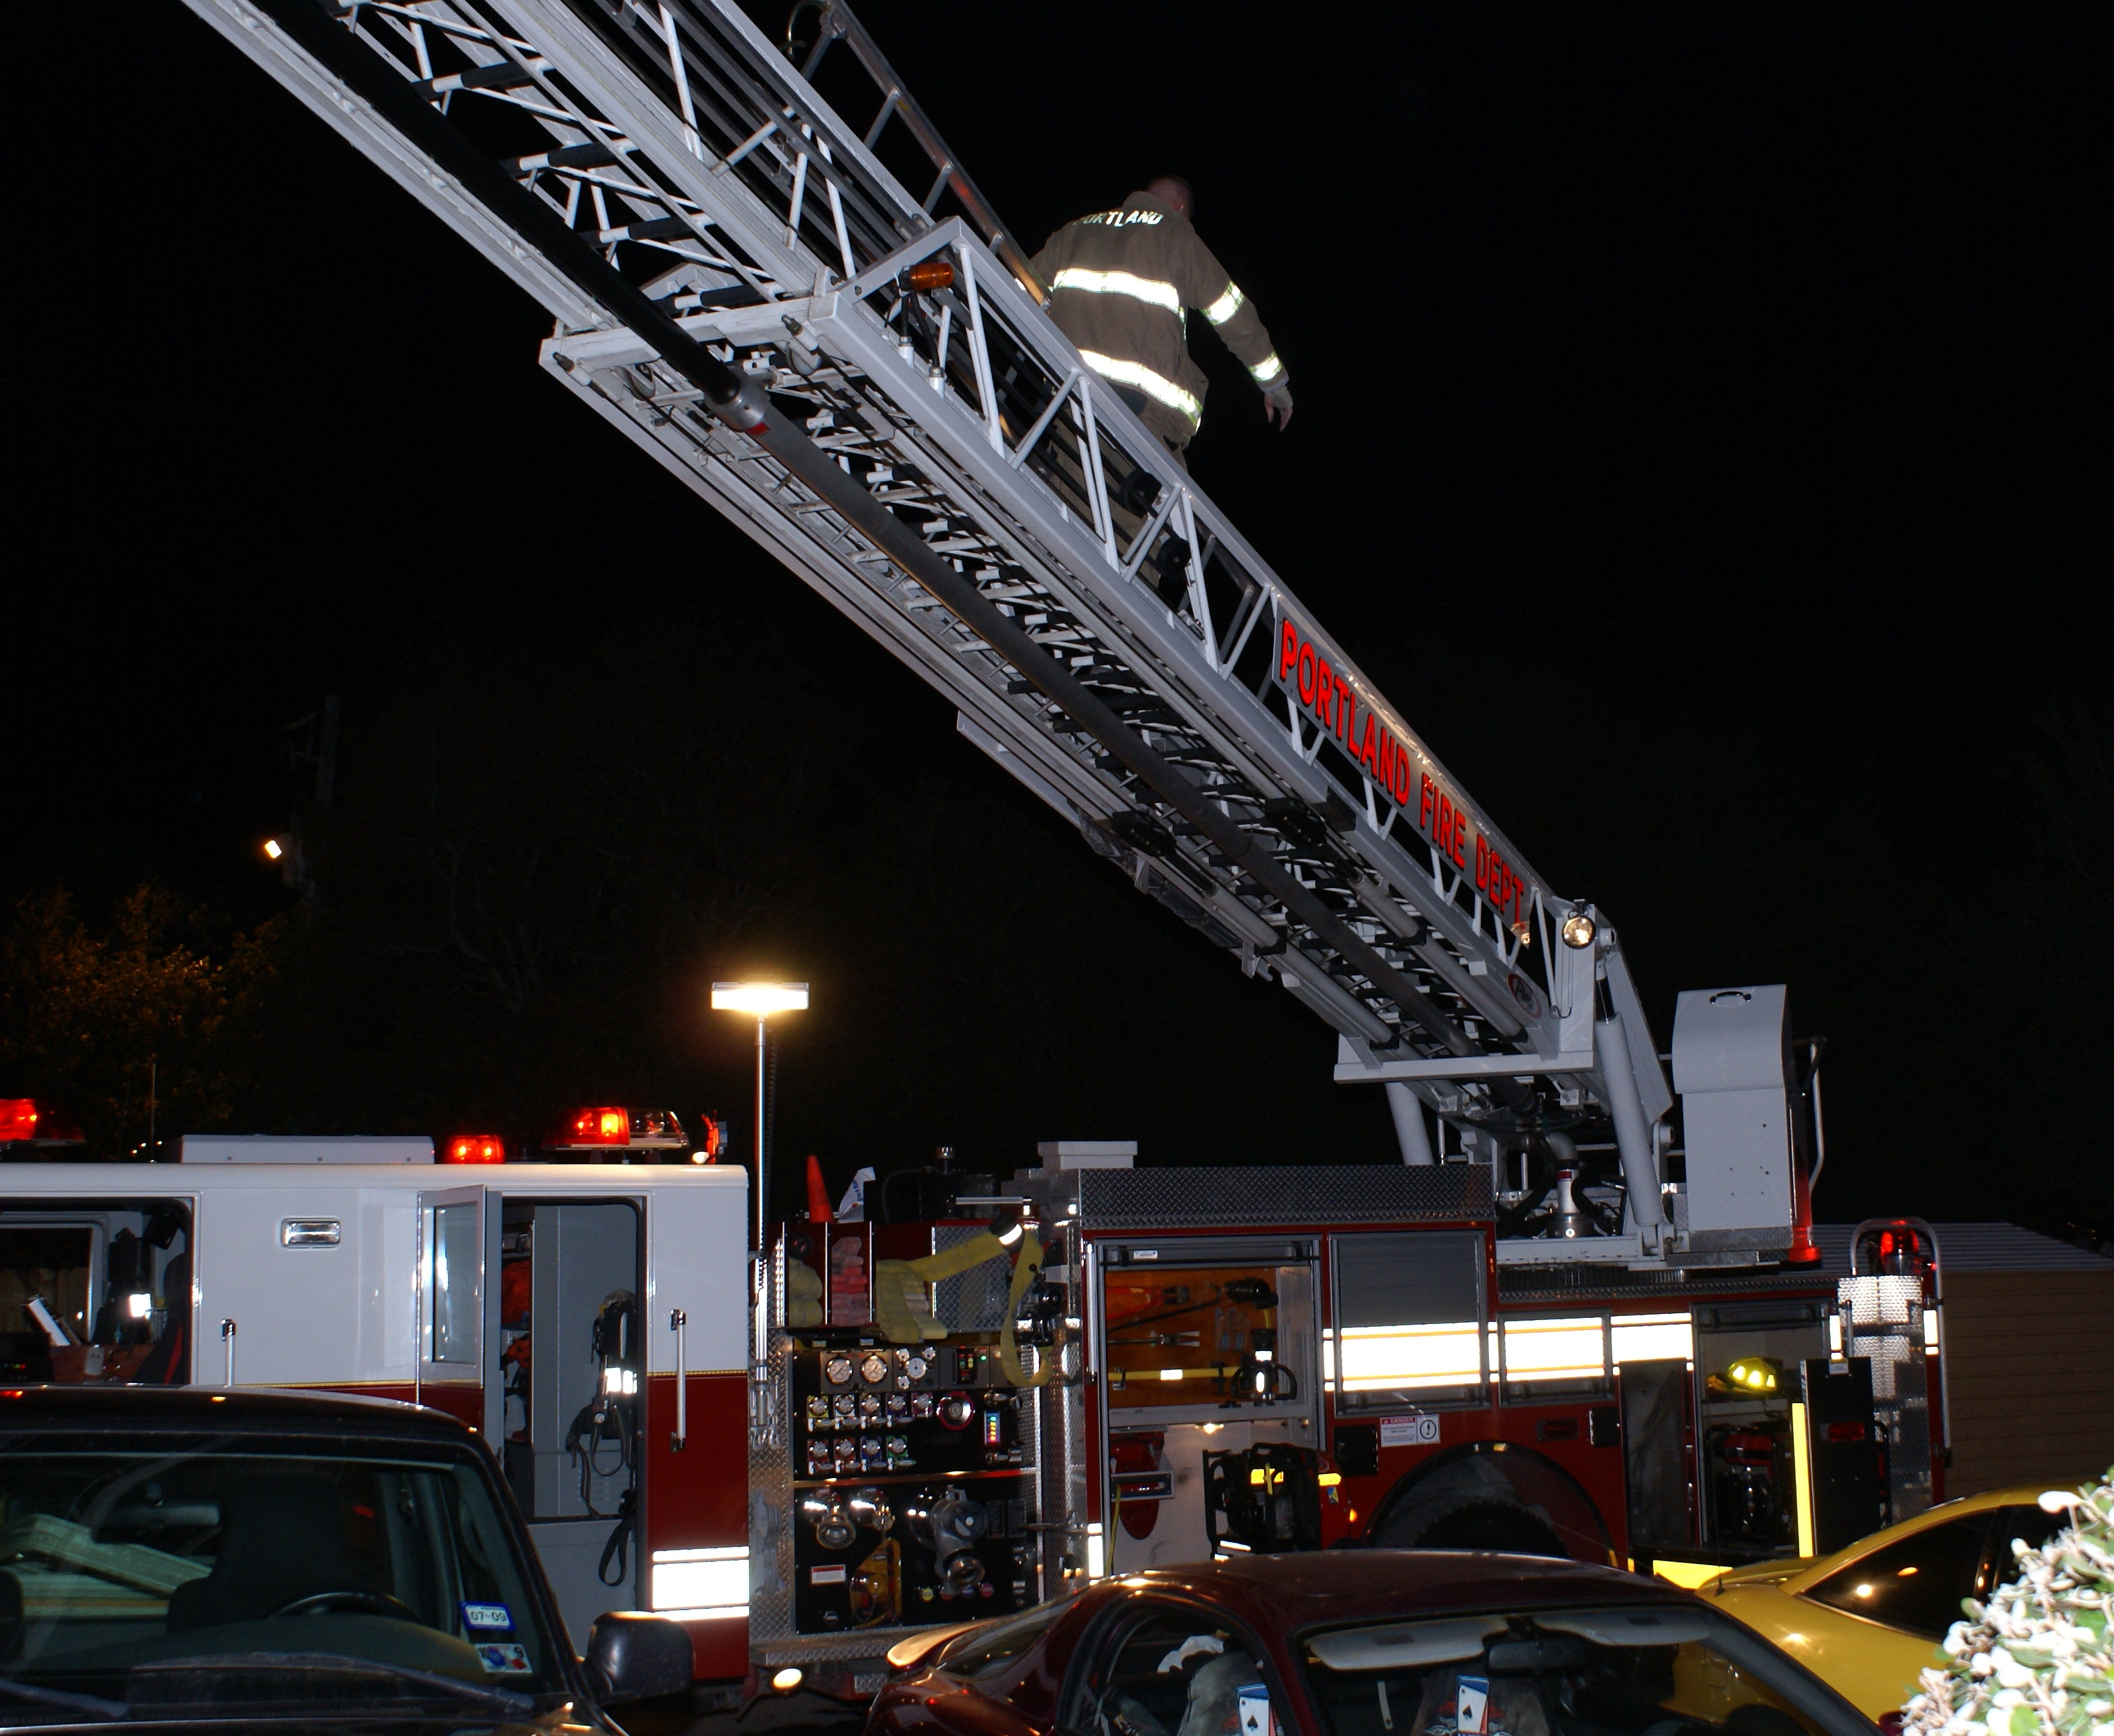 Ladder 2 action pic